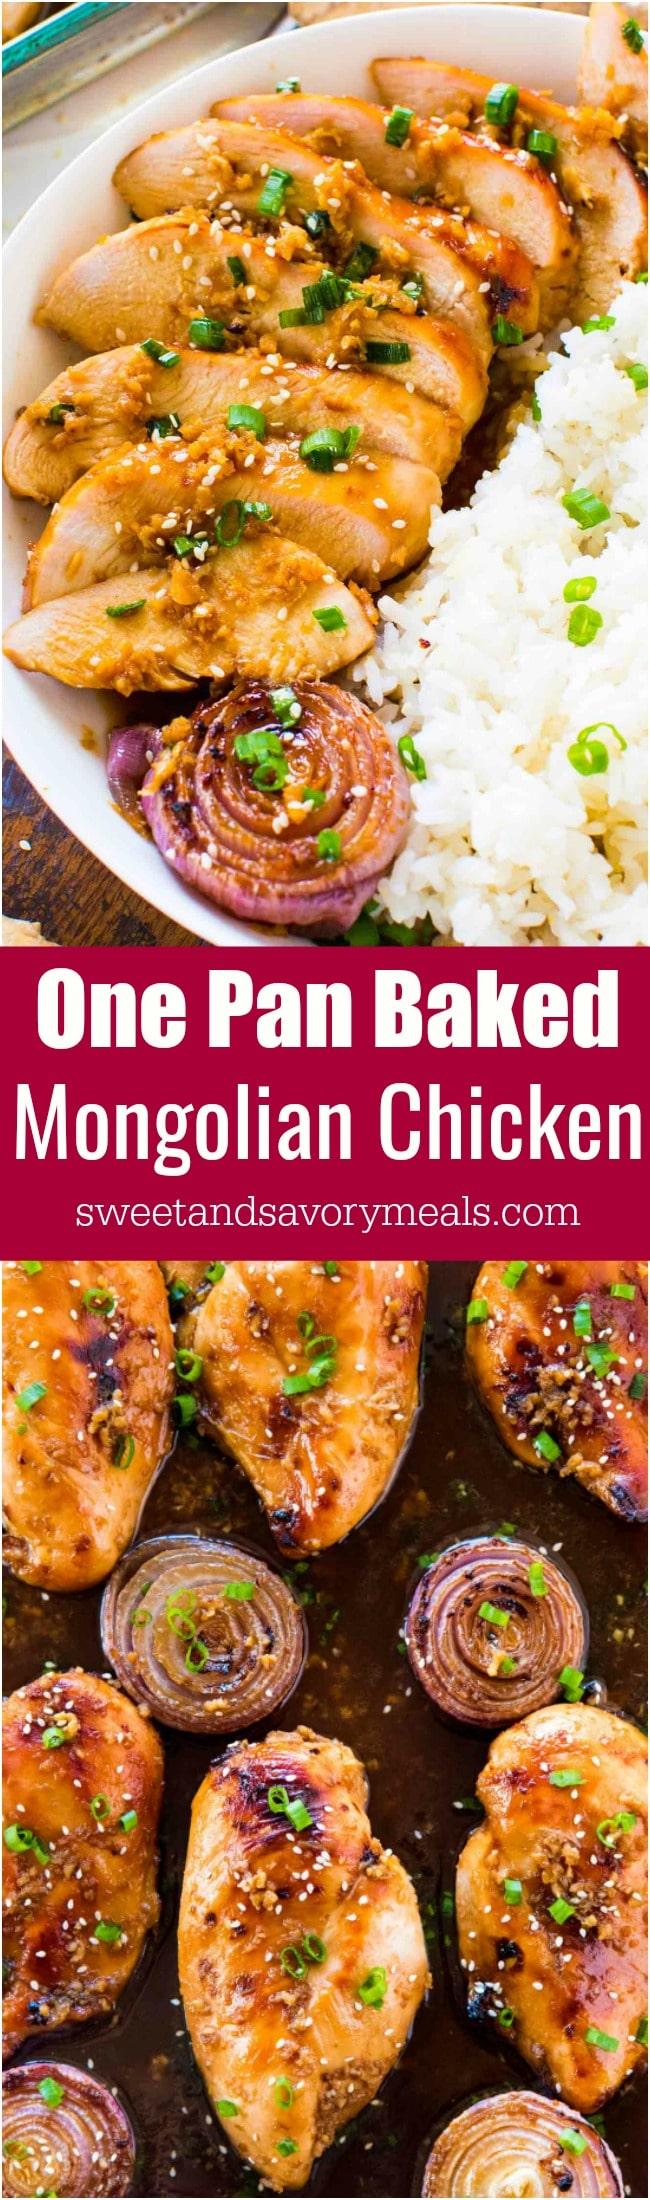 Best Baked Mongolian Chicken is the perfect combo of sweet and savory. A very easy dish, made in one pan and baked instead of fried.